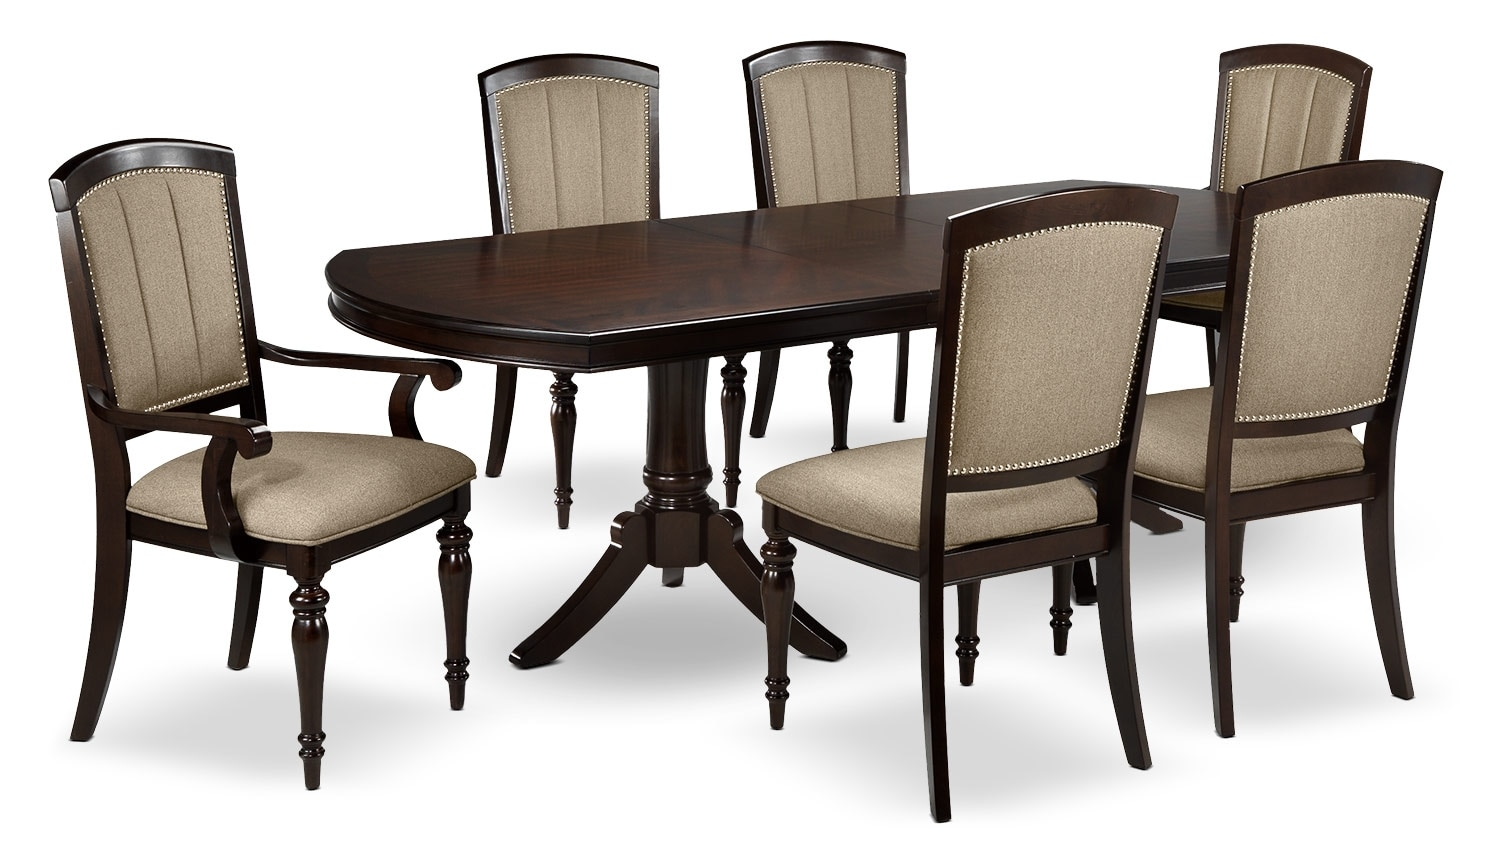 Cherry Dining Room Table And Chairs Thoreaux 7 Piece Dining Room Set Dark Cherry Leon S